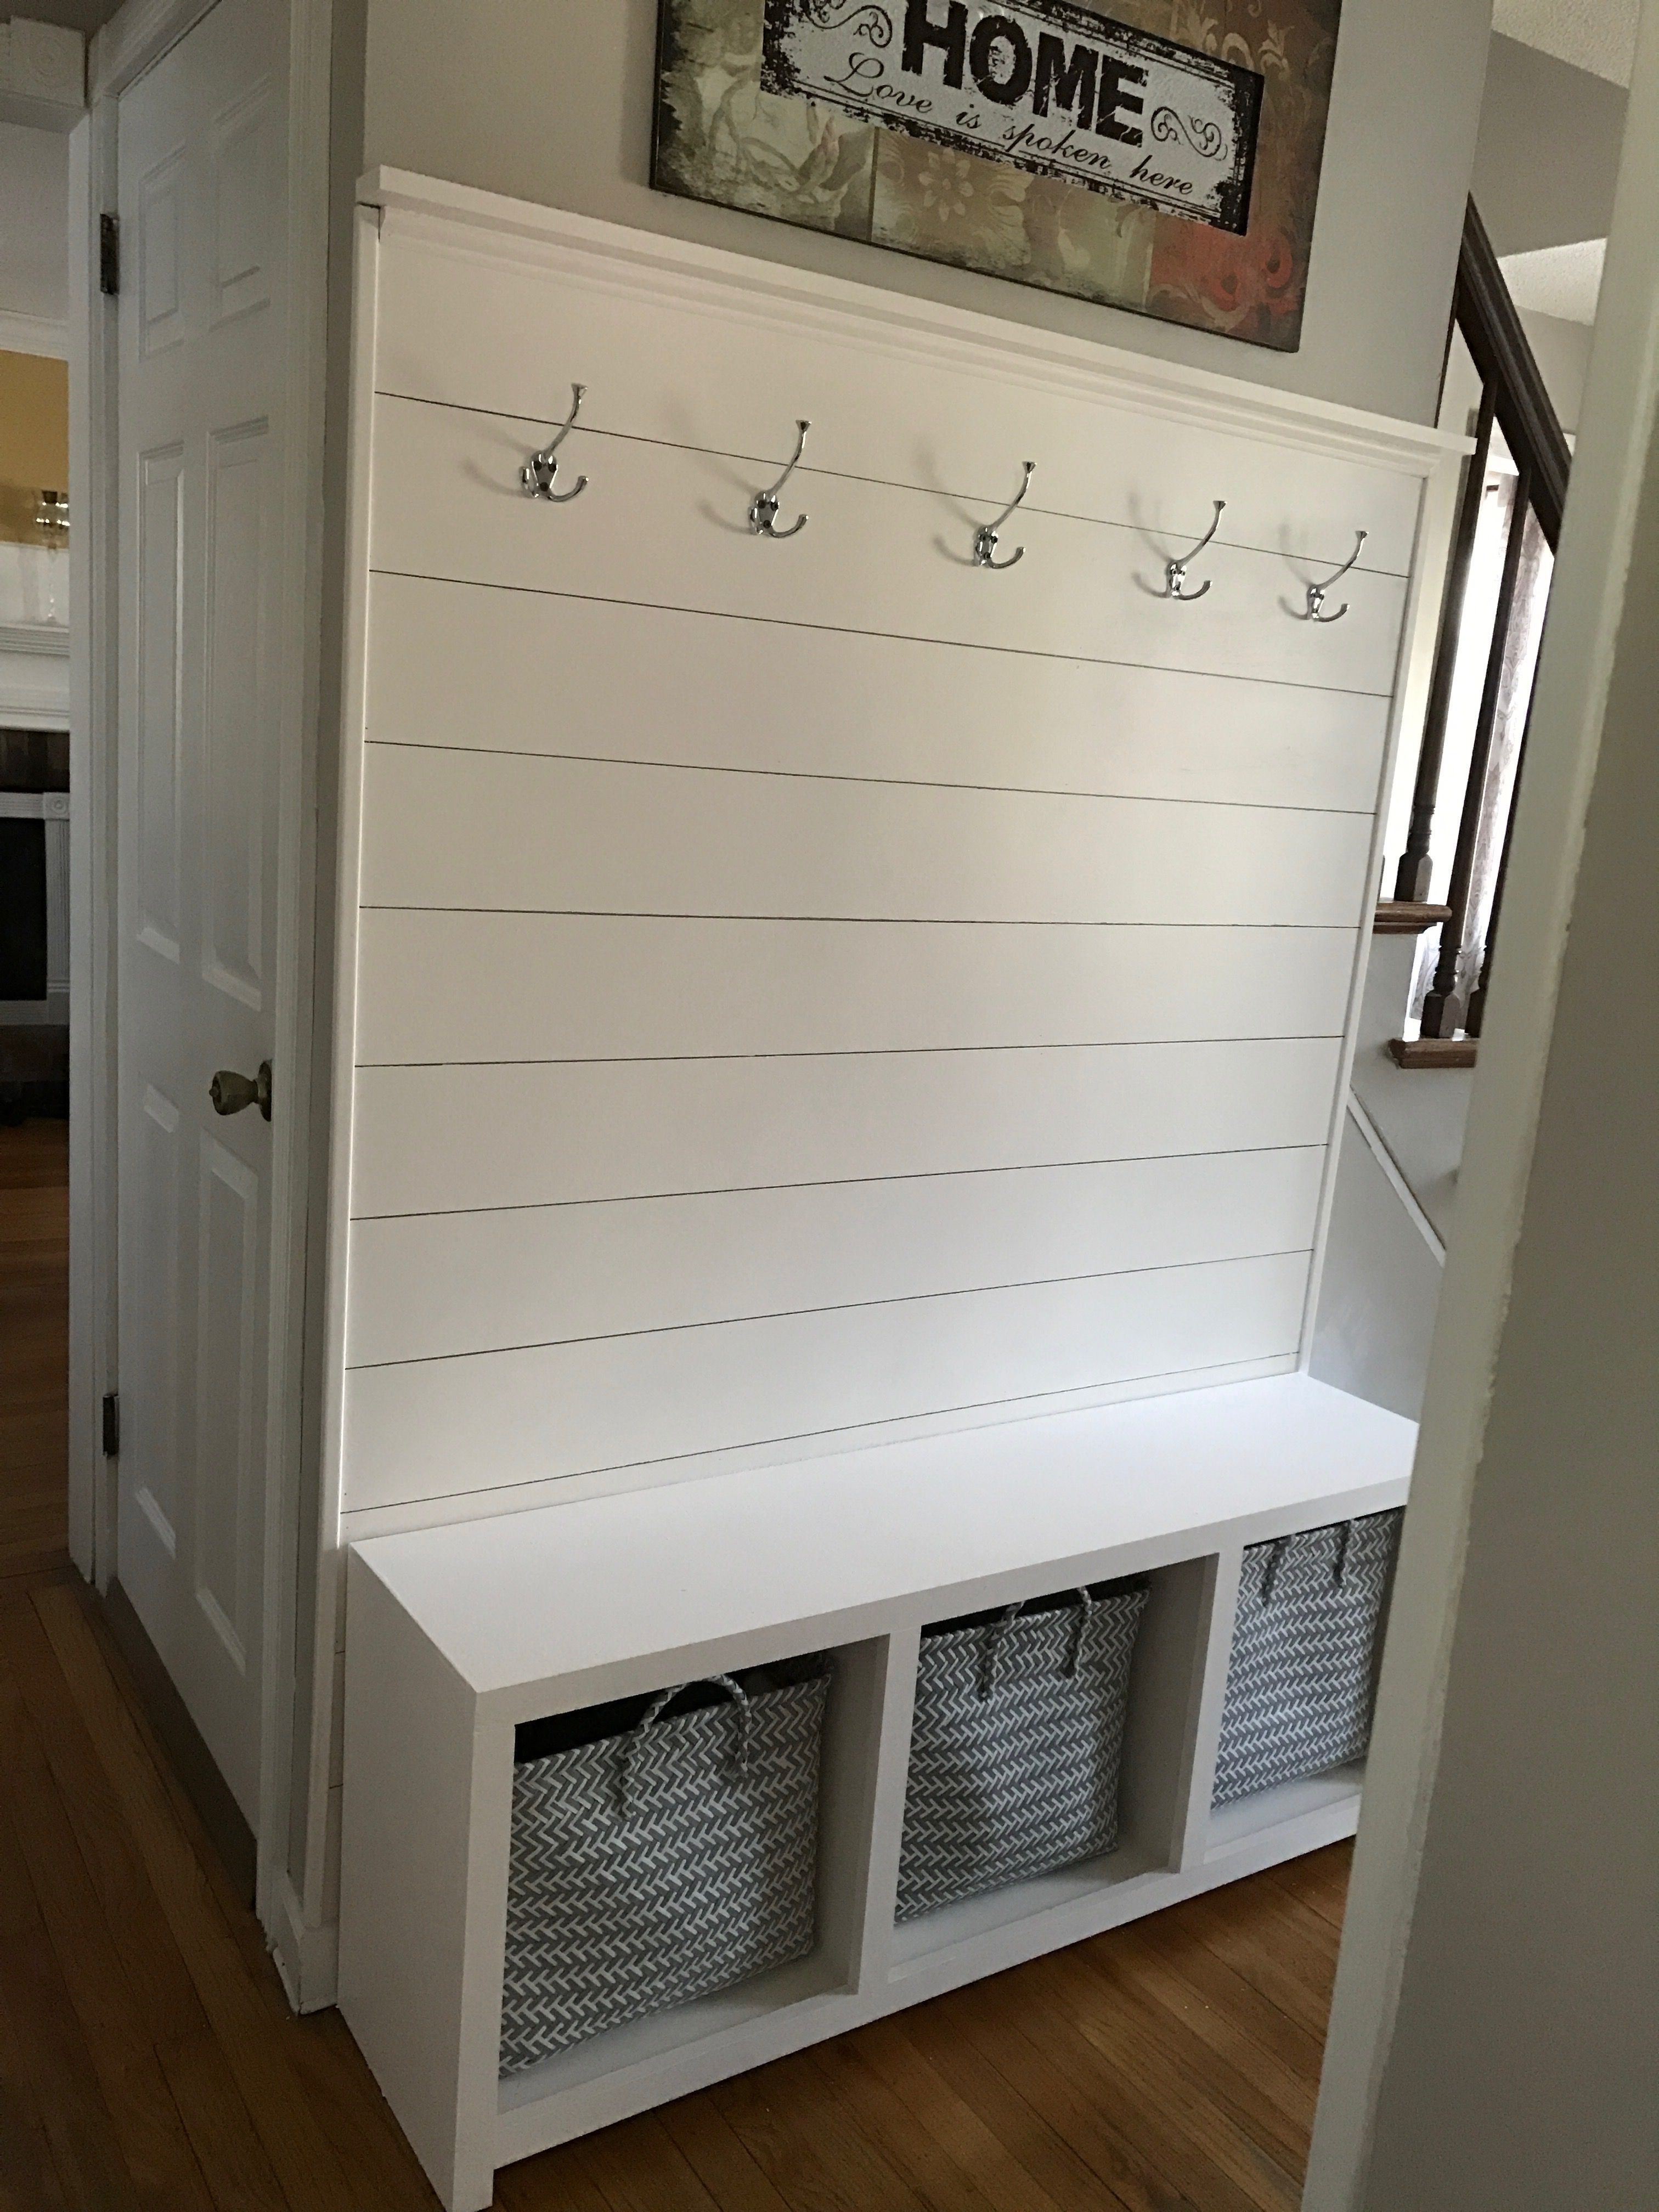 Wondrous Wanted To Spruce Up My Hallway Shiplap Wall And Entry Bench Beatyapartments Chair Design Images Beatyapartmentscom